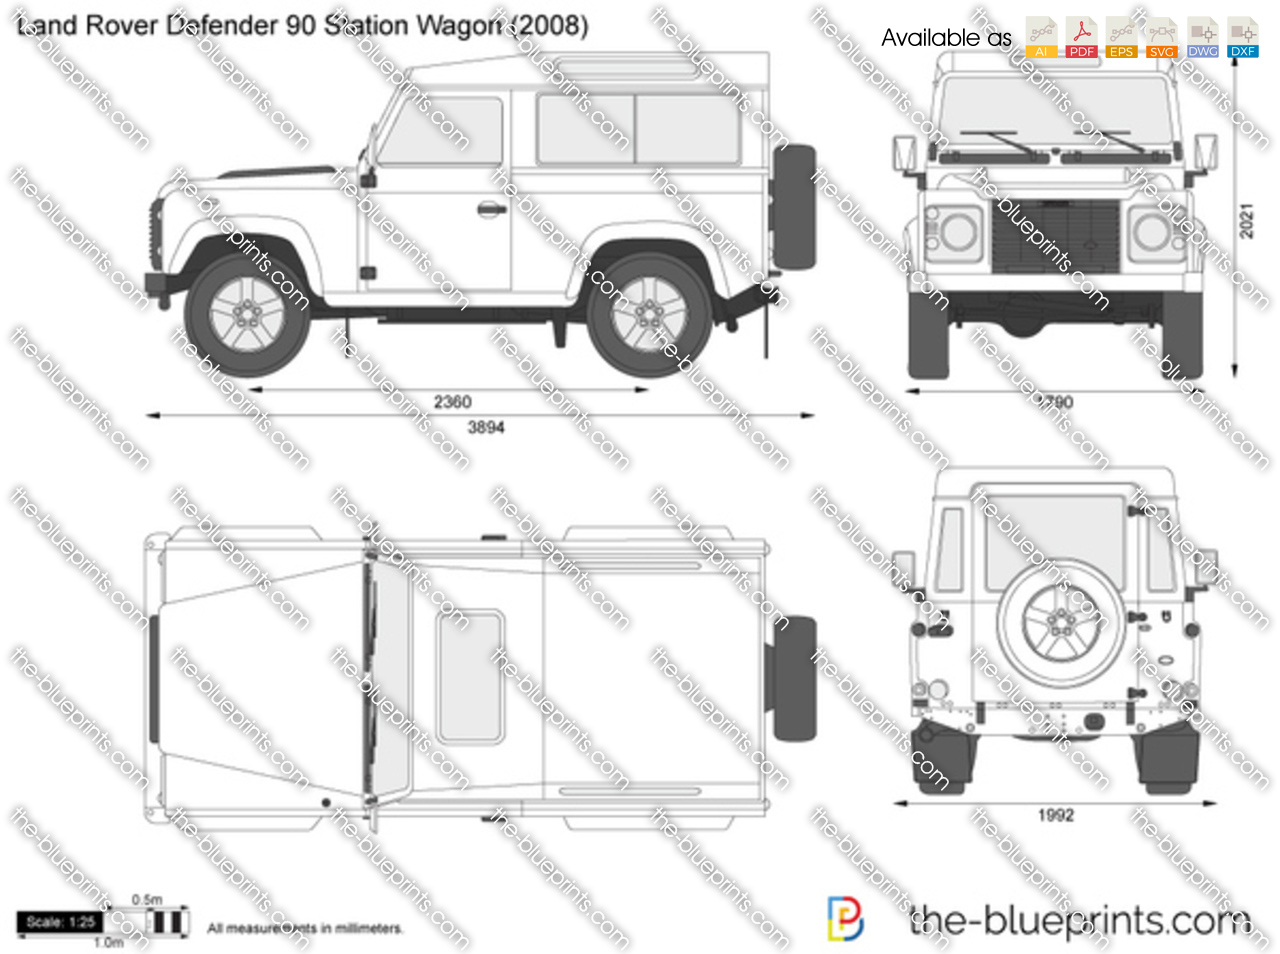 Land Rover Defender 90 Station Wagon 1990